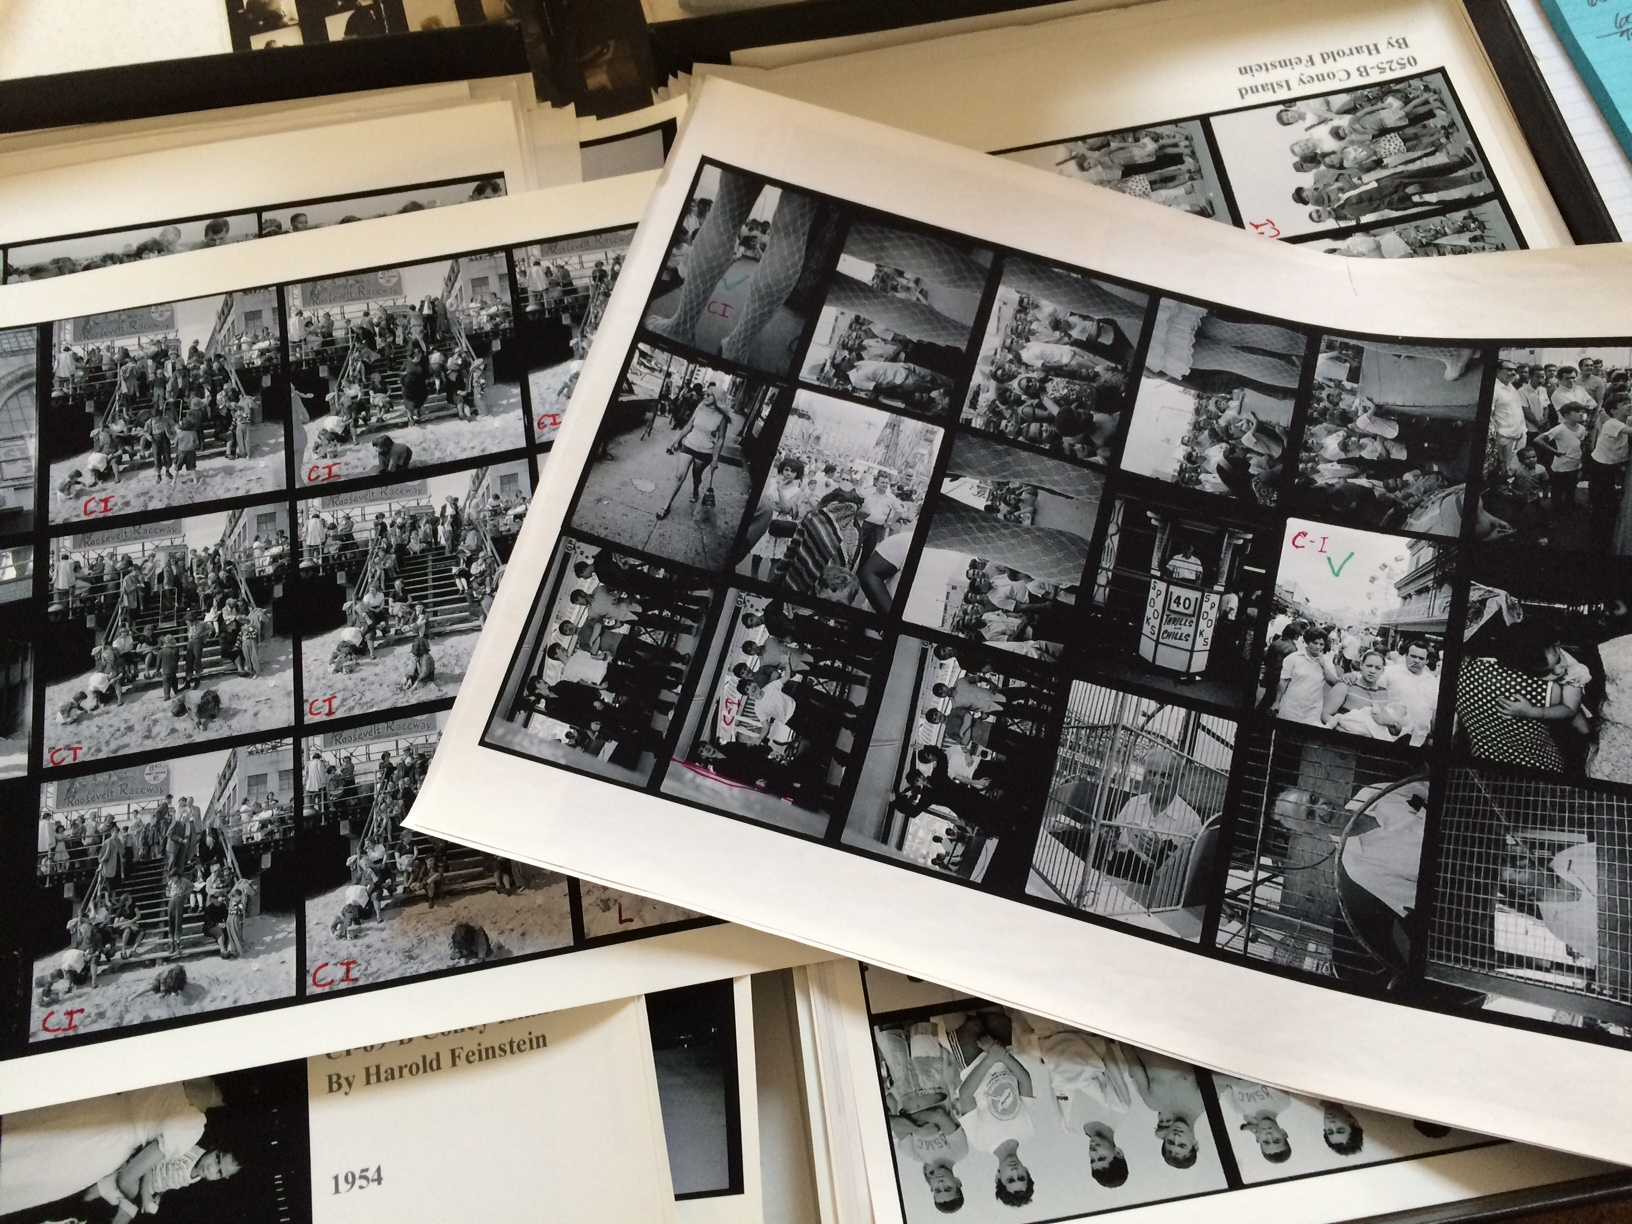 The 13x19 contact sheets